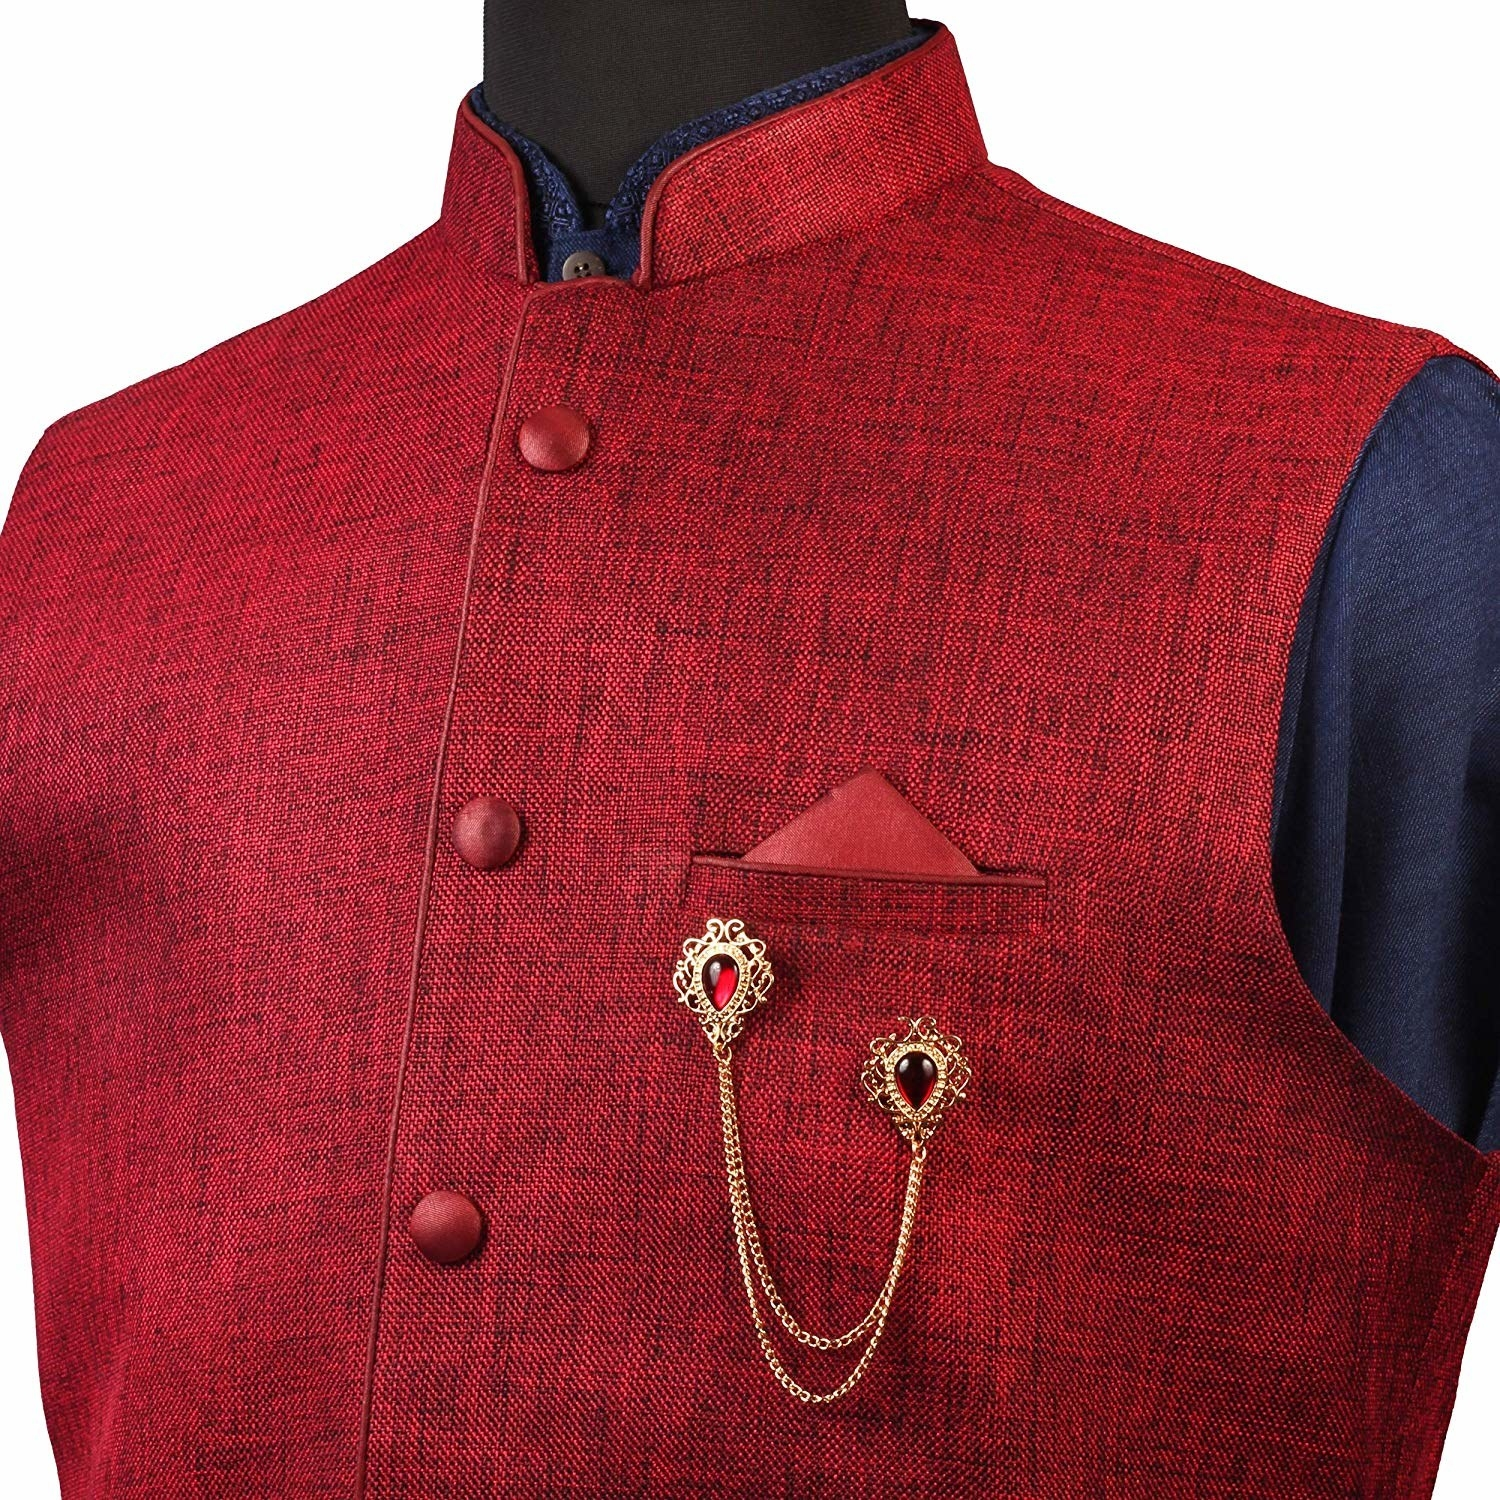 The brooch being showcased on a red Nehru jacket.